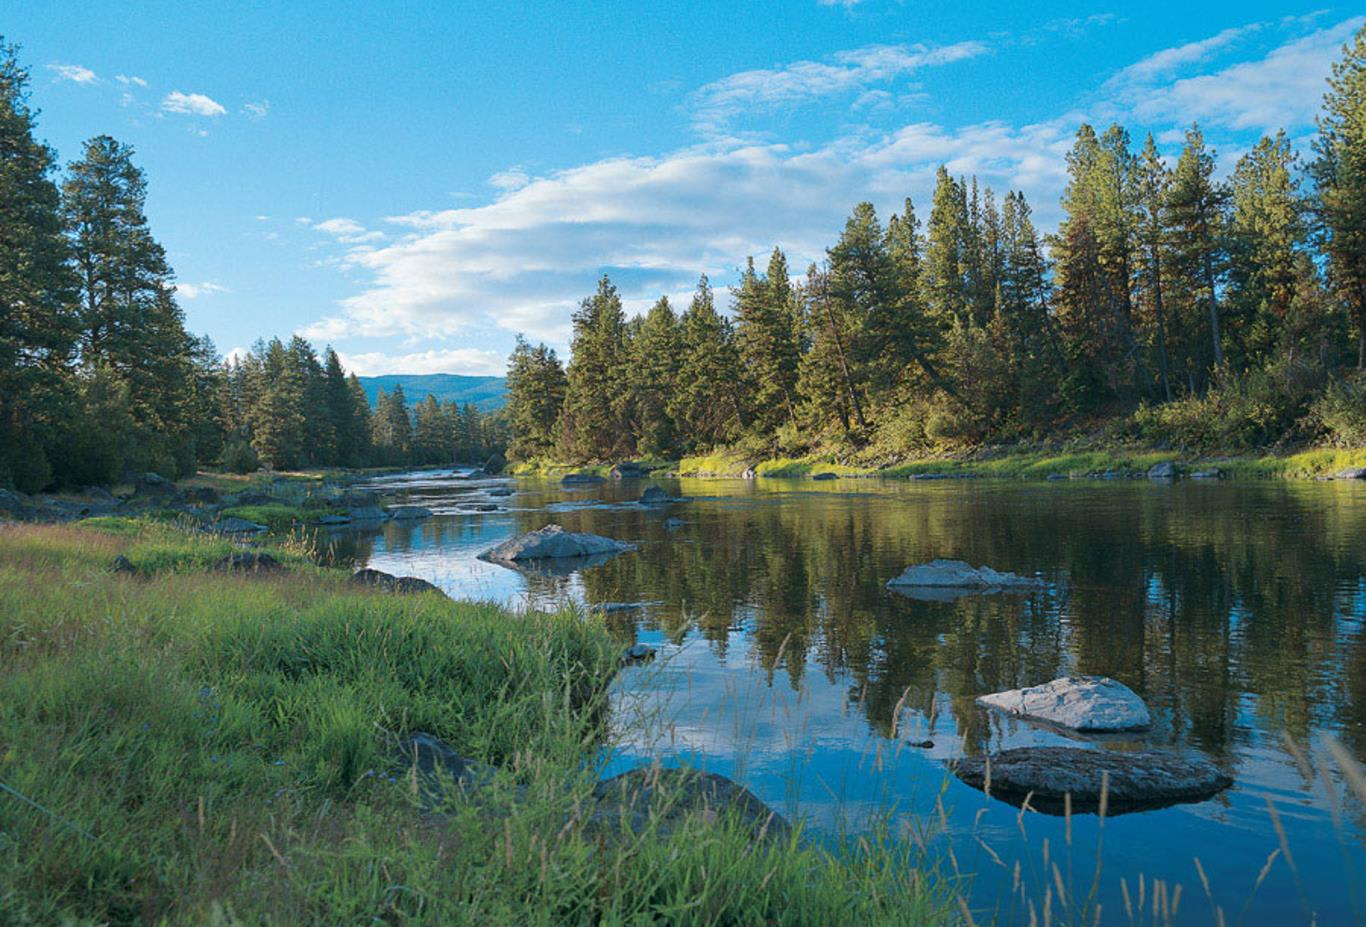 The Blackfoot River Lodge on the banks of the Blackfoot River